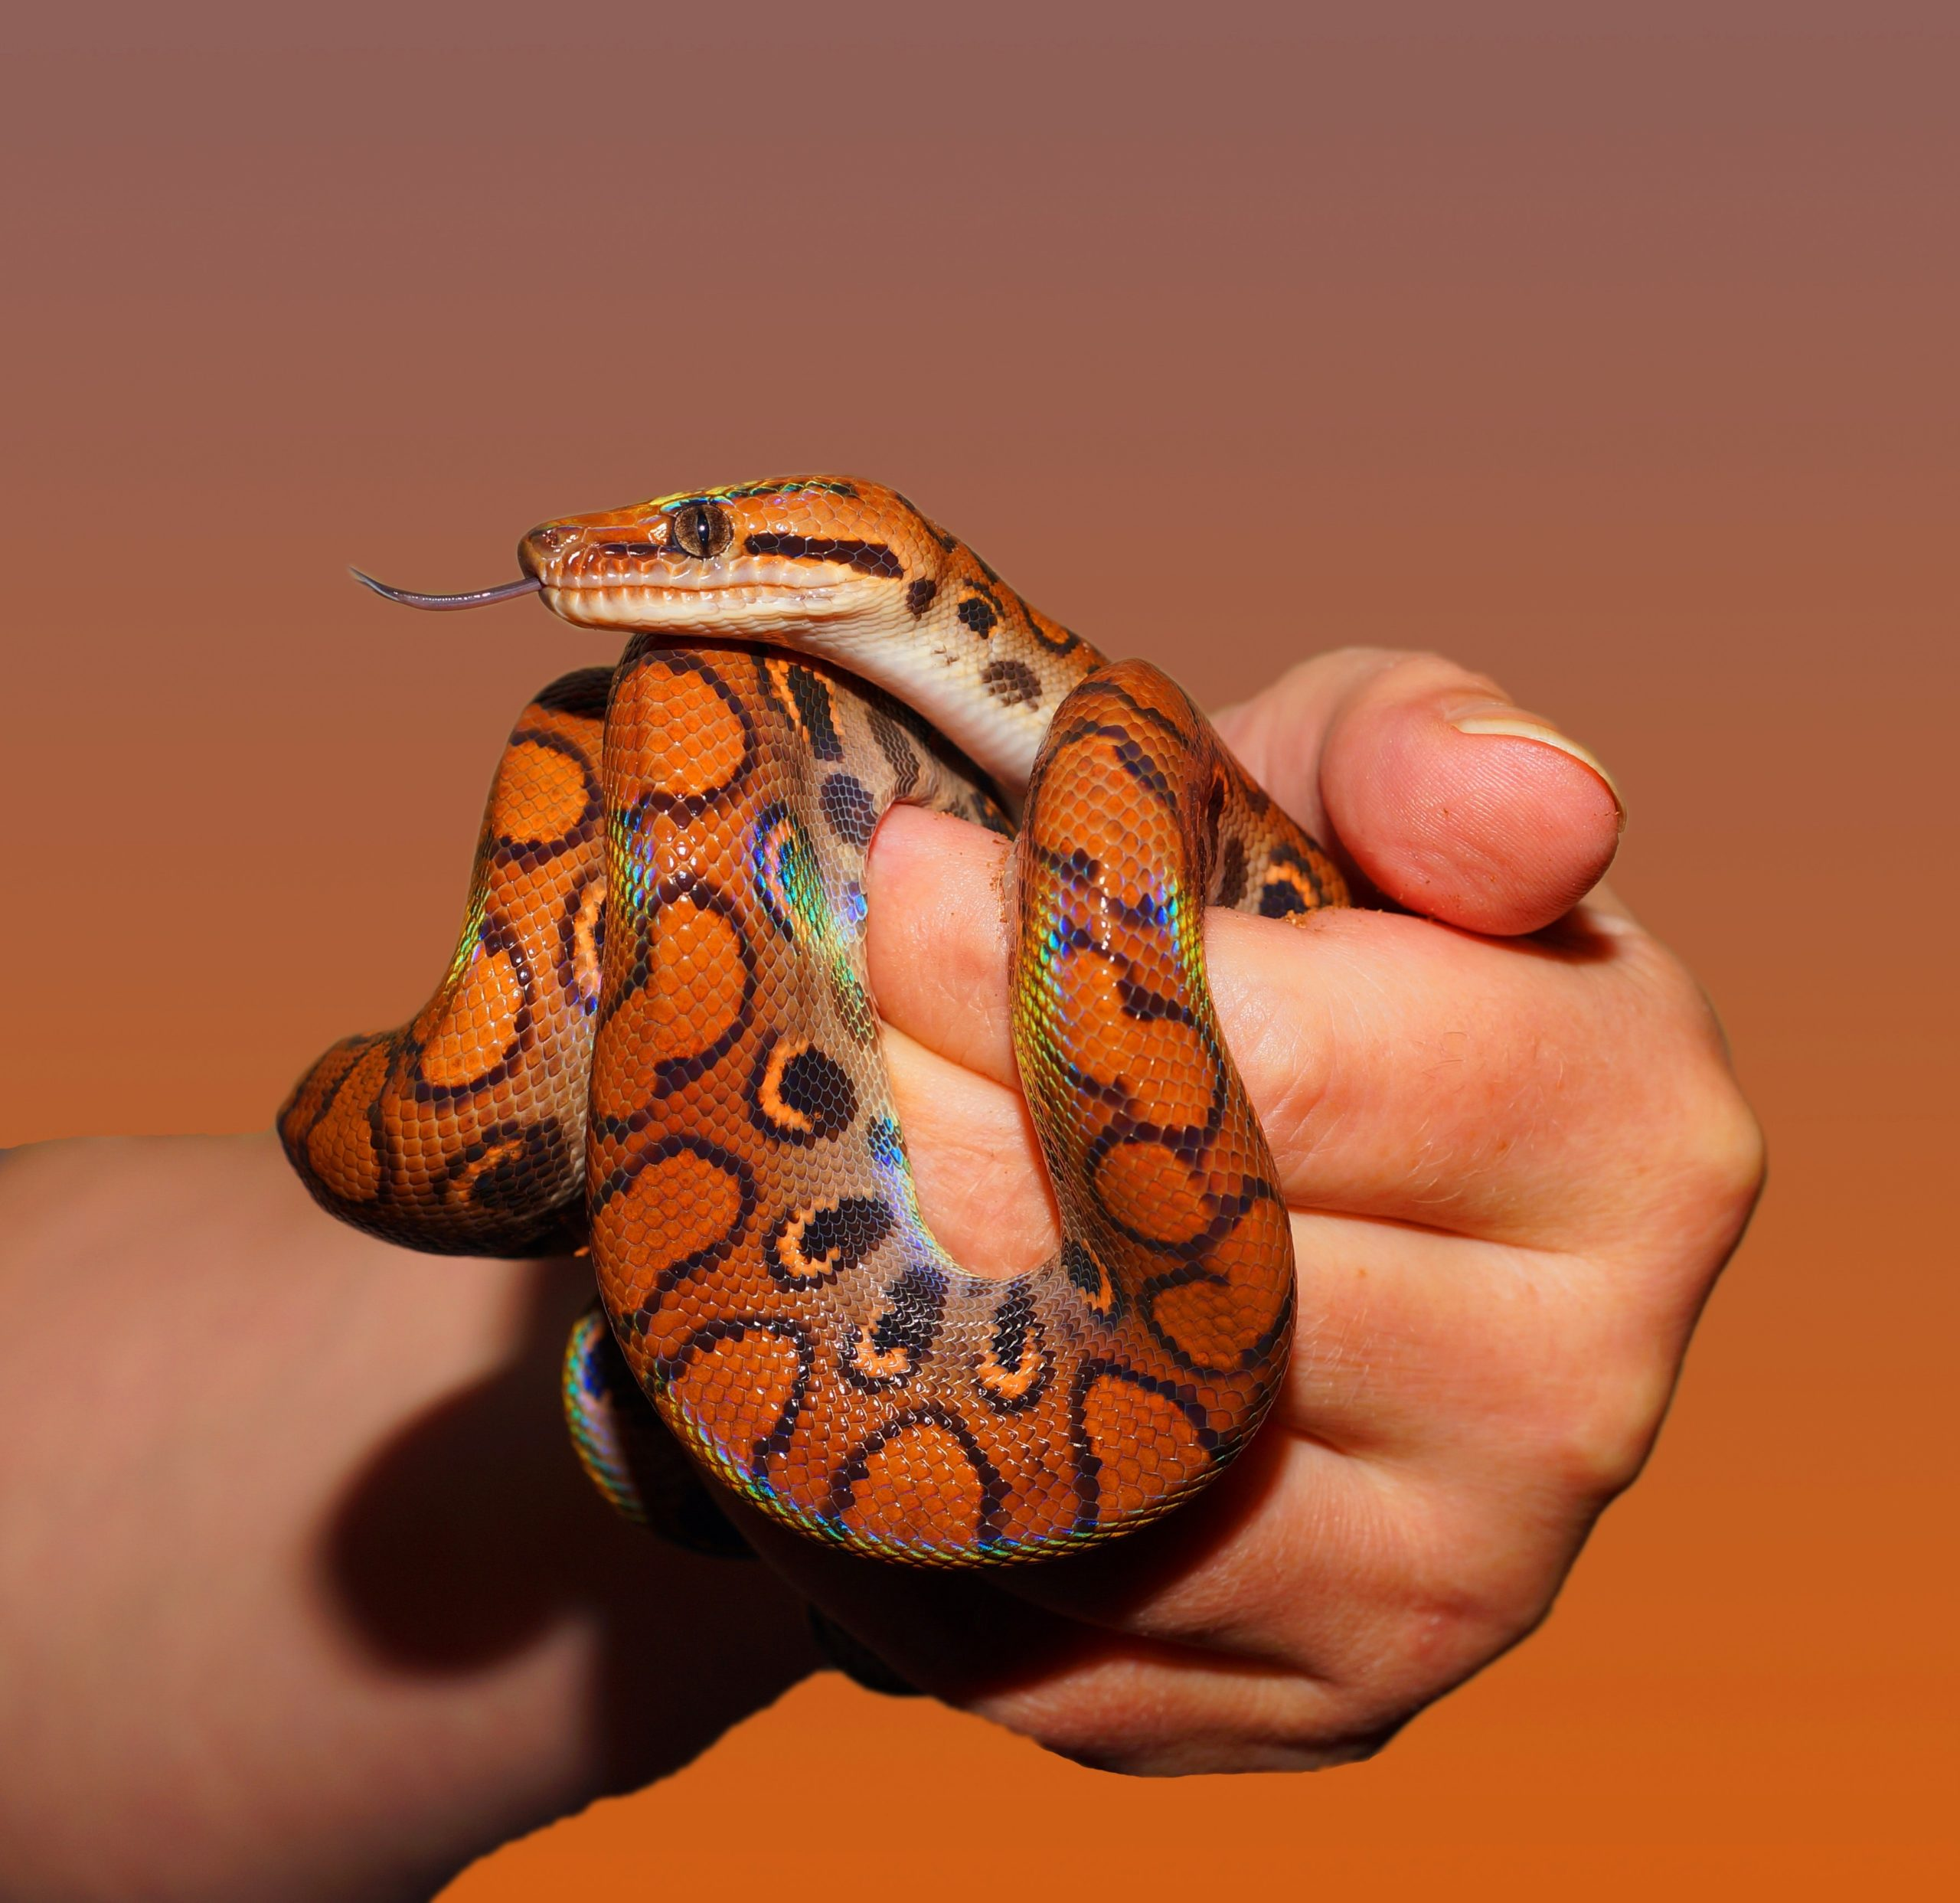 Top 3 Snakes For Sale